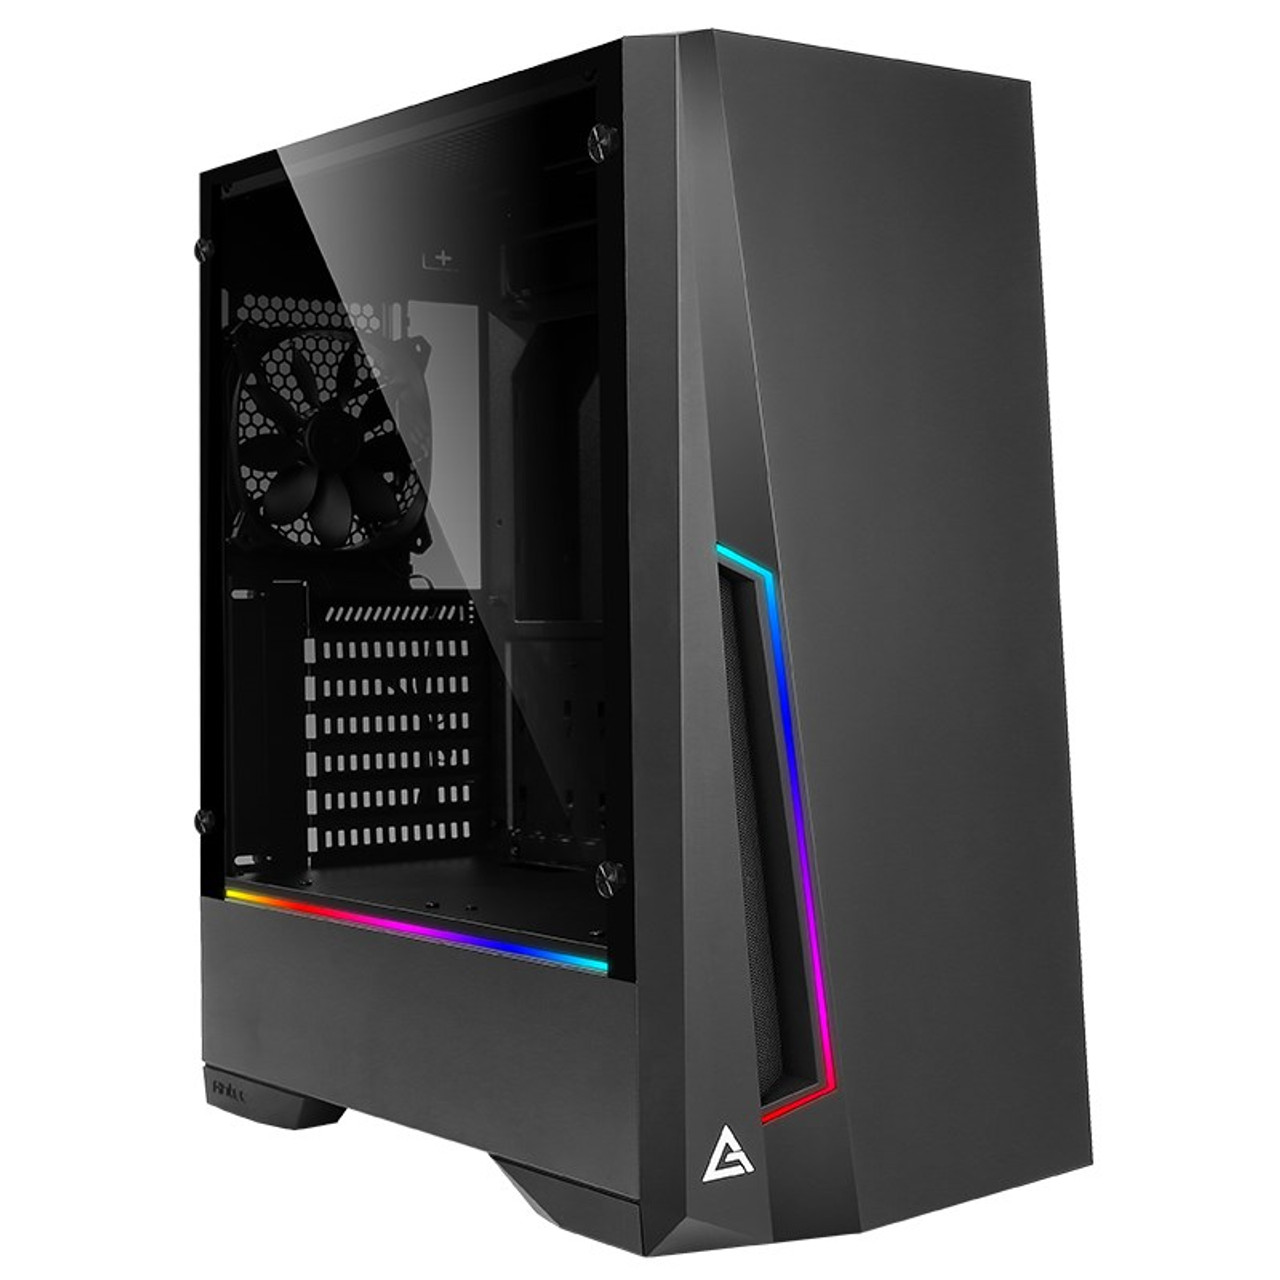 Image for Antec DP501 ARGB Tempered Glass Mid-Tower ATX Case CX Computer Superstore